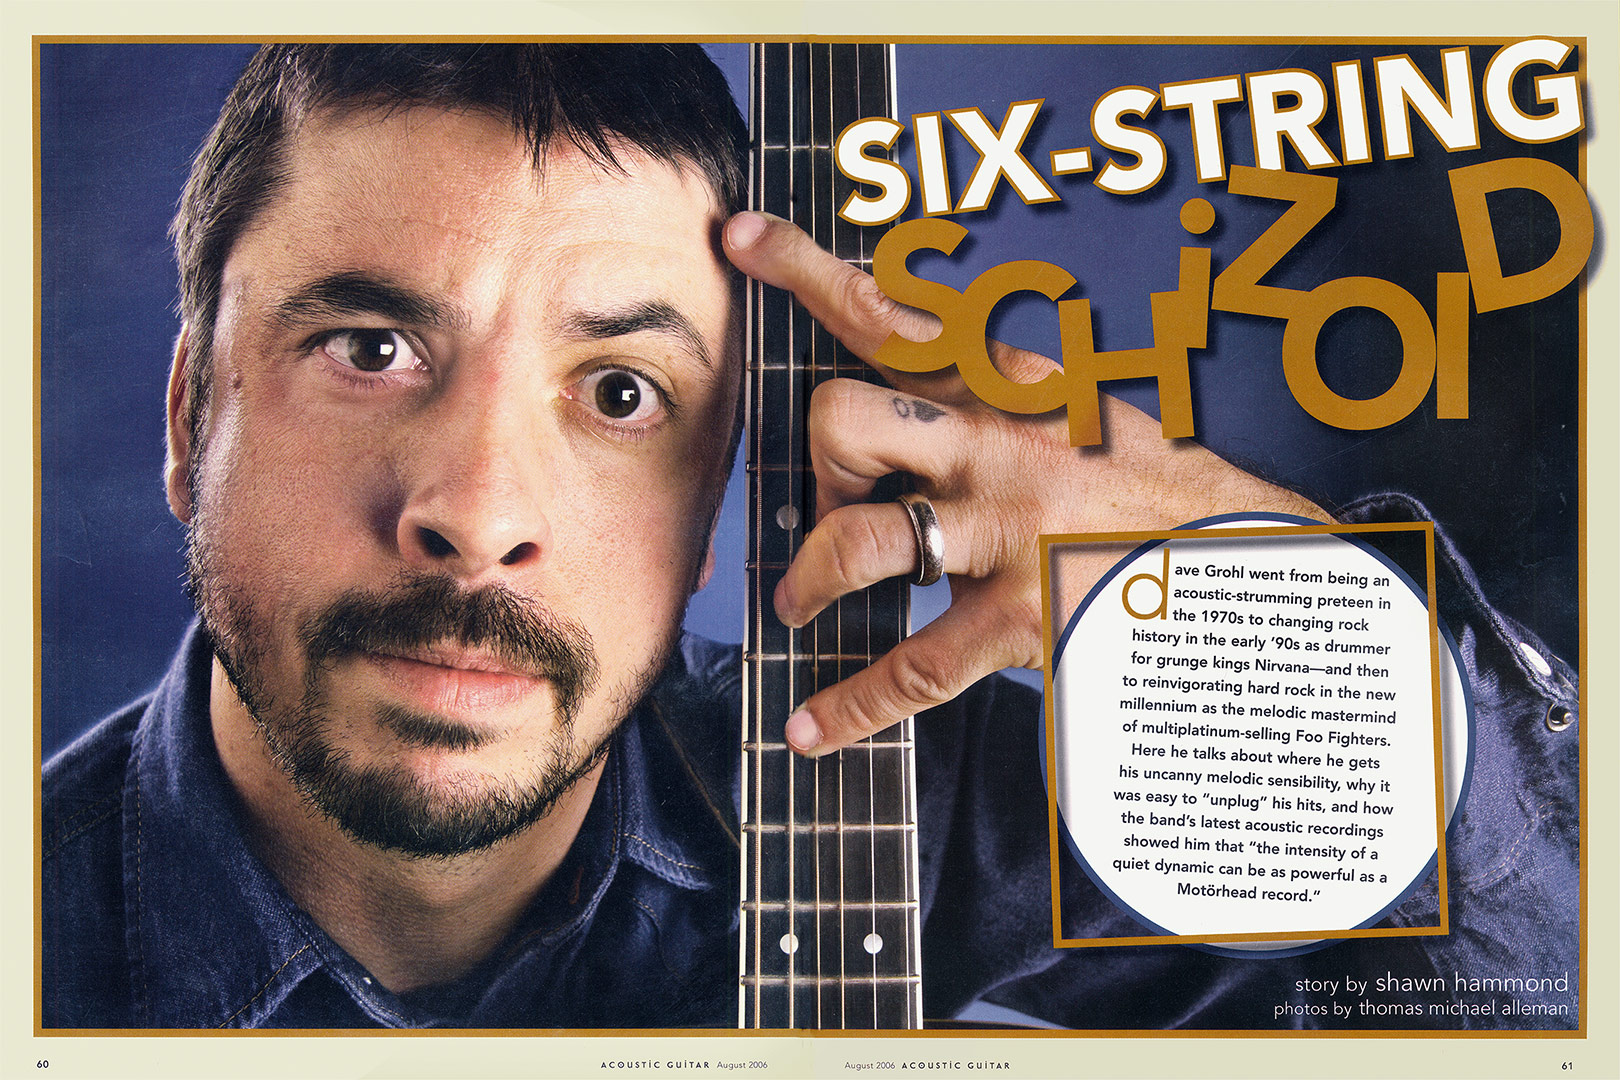 018-AC-GUITAR-GROHL-DOUBLE.jpg